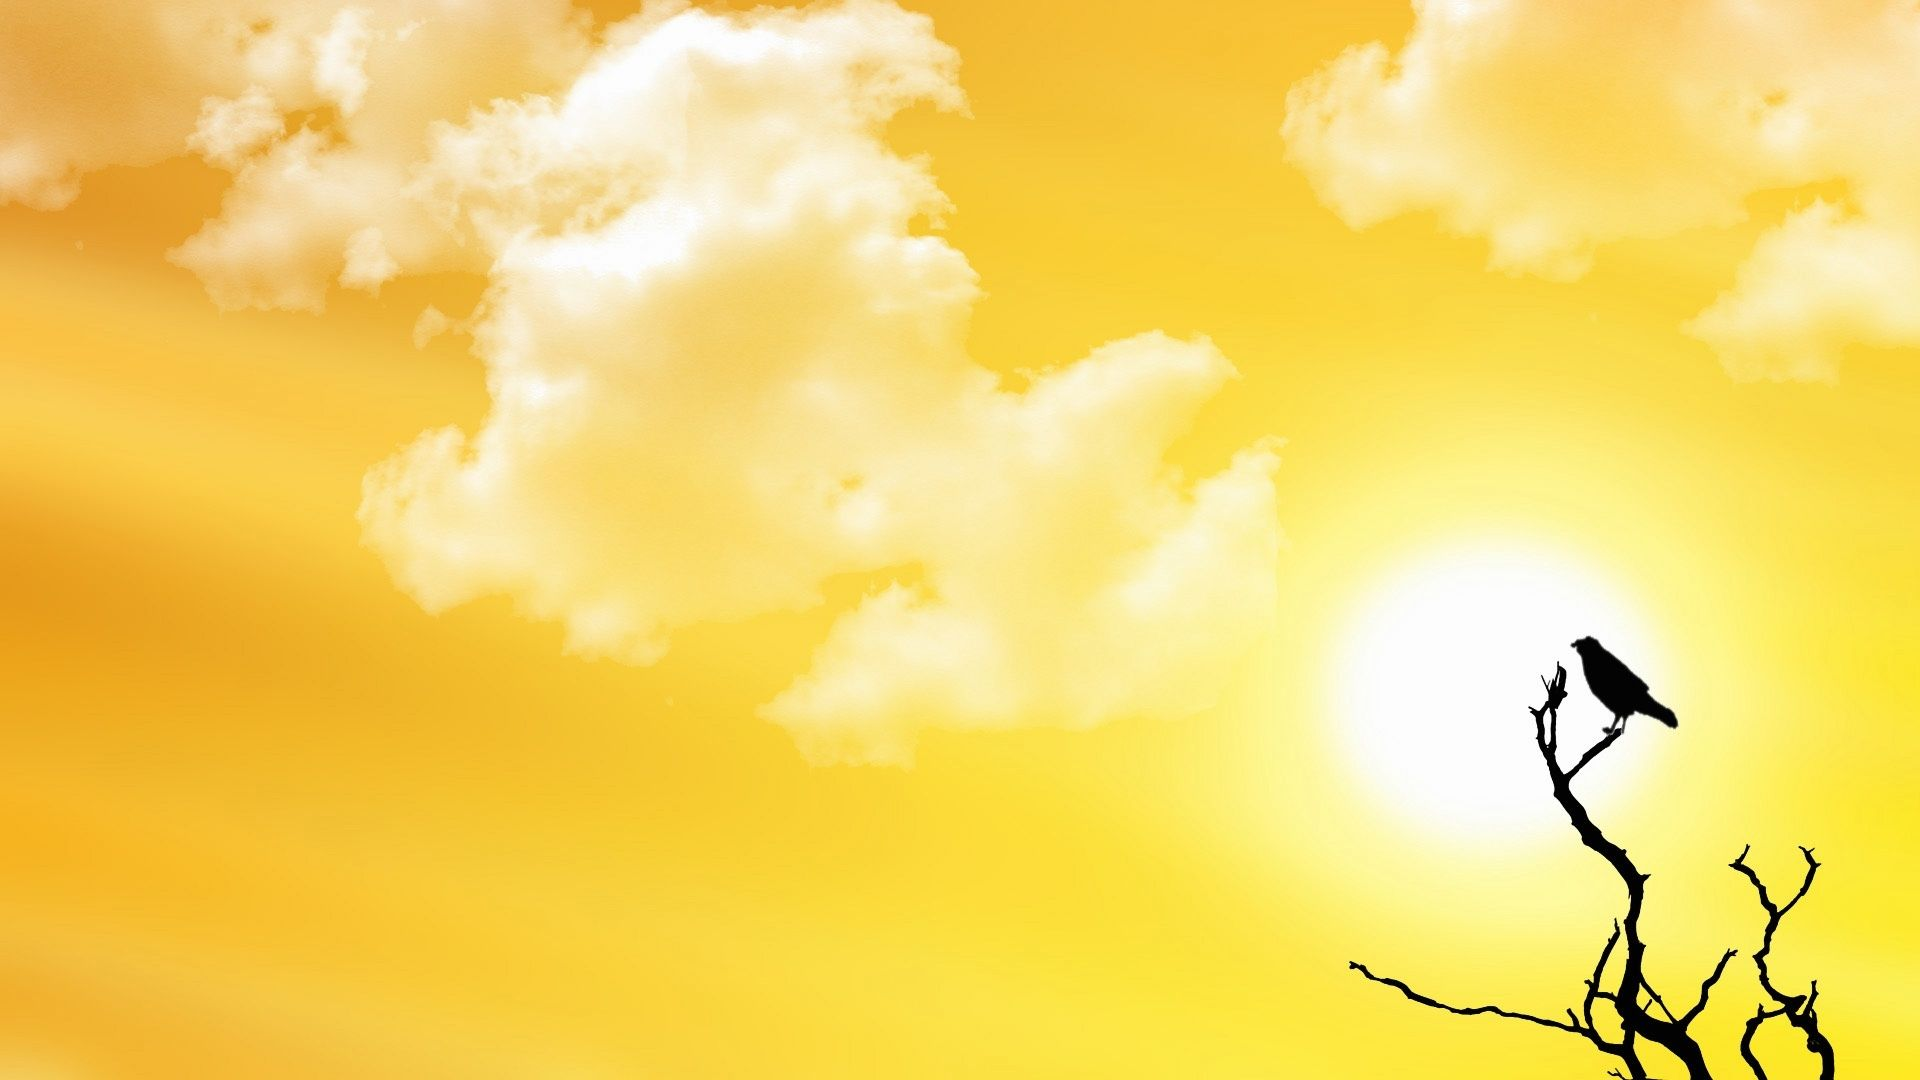 Summer Yellow Sky Nature HD Wallpaper Picture Download 1920x1080